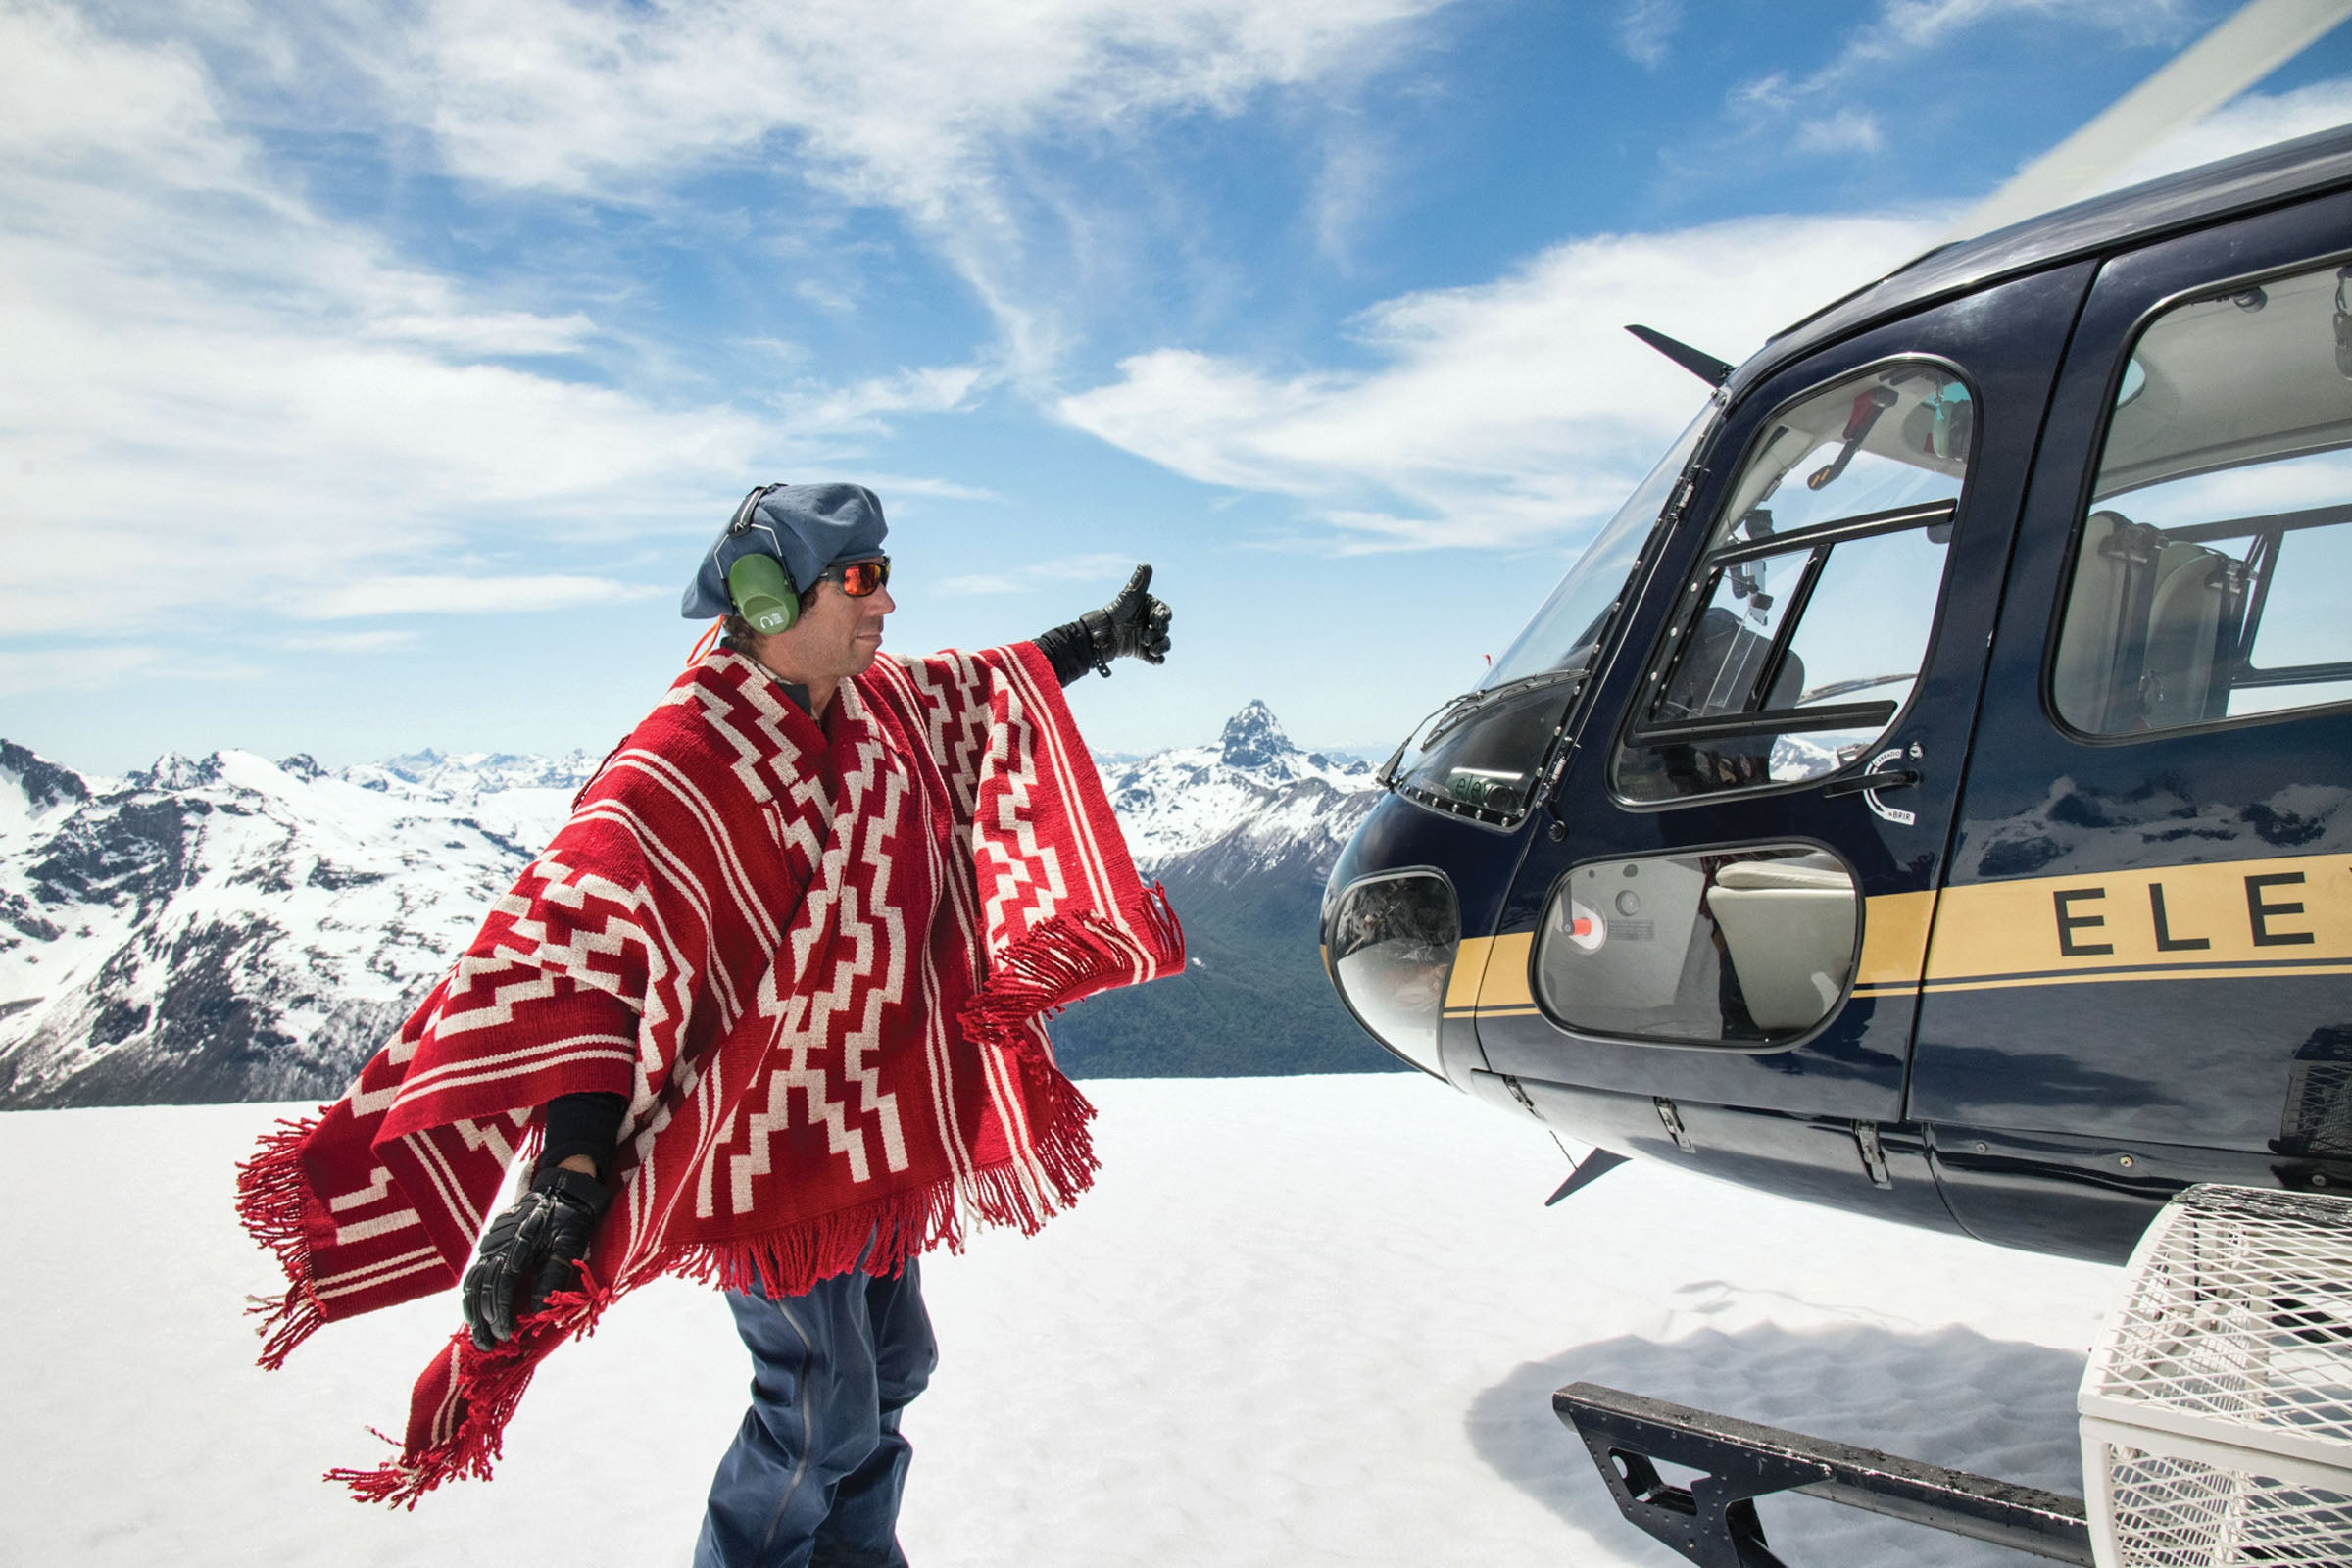 Eleven Experience guide signals to helicopter